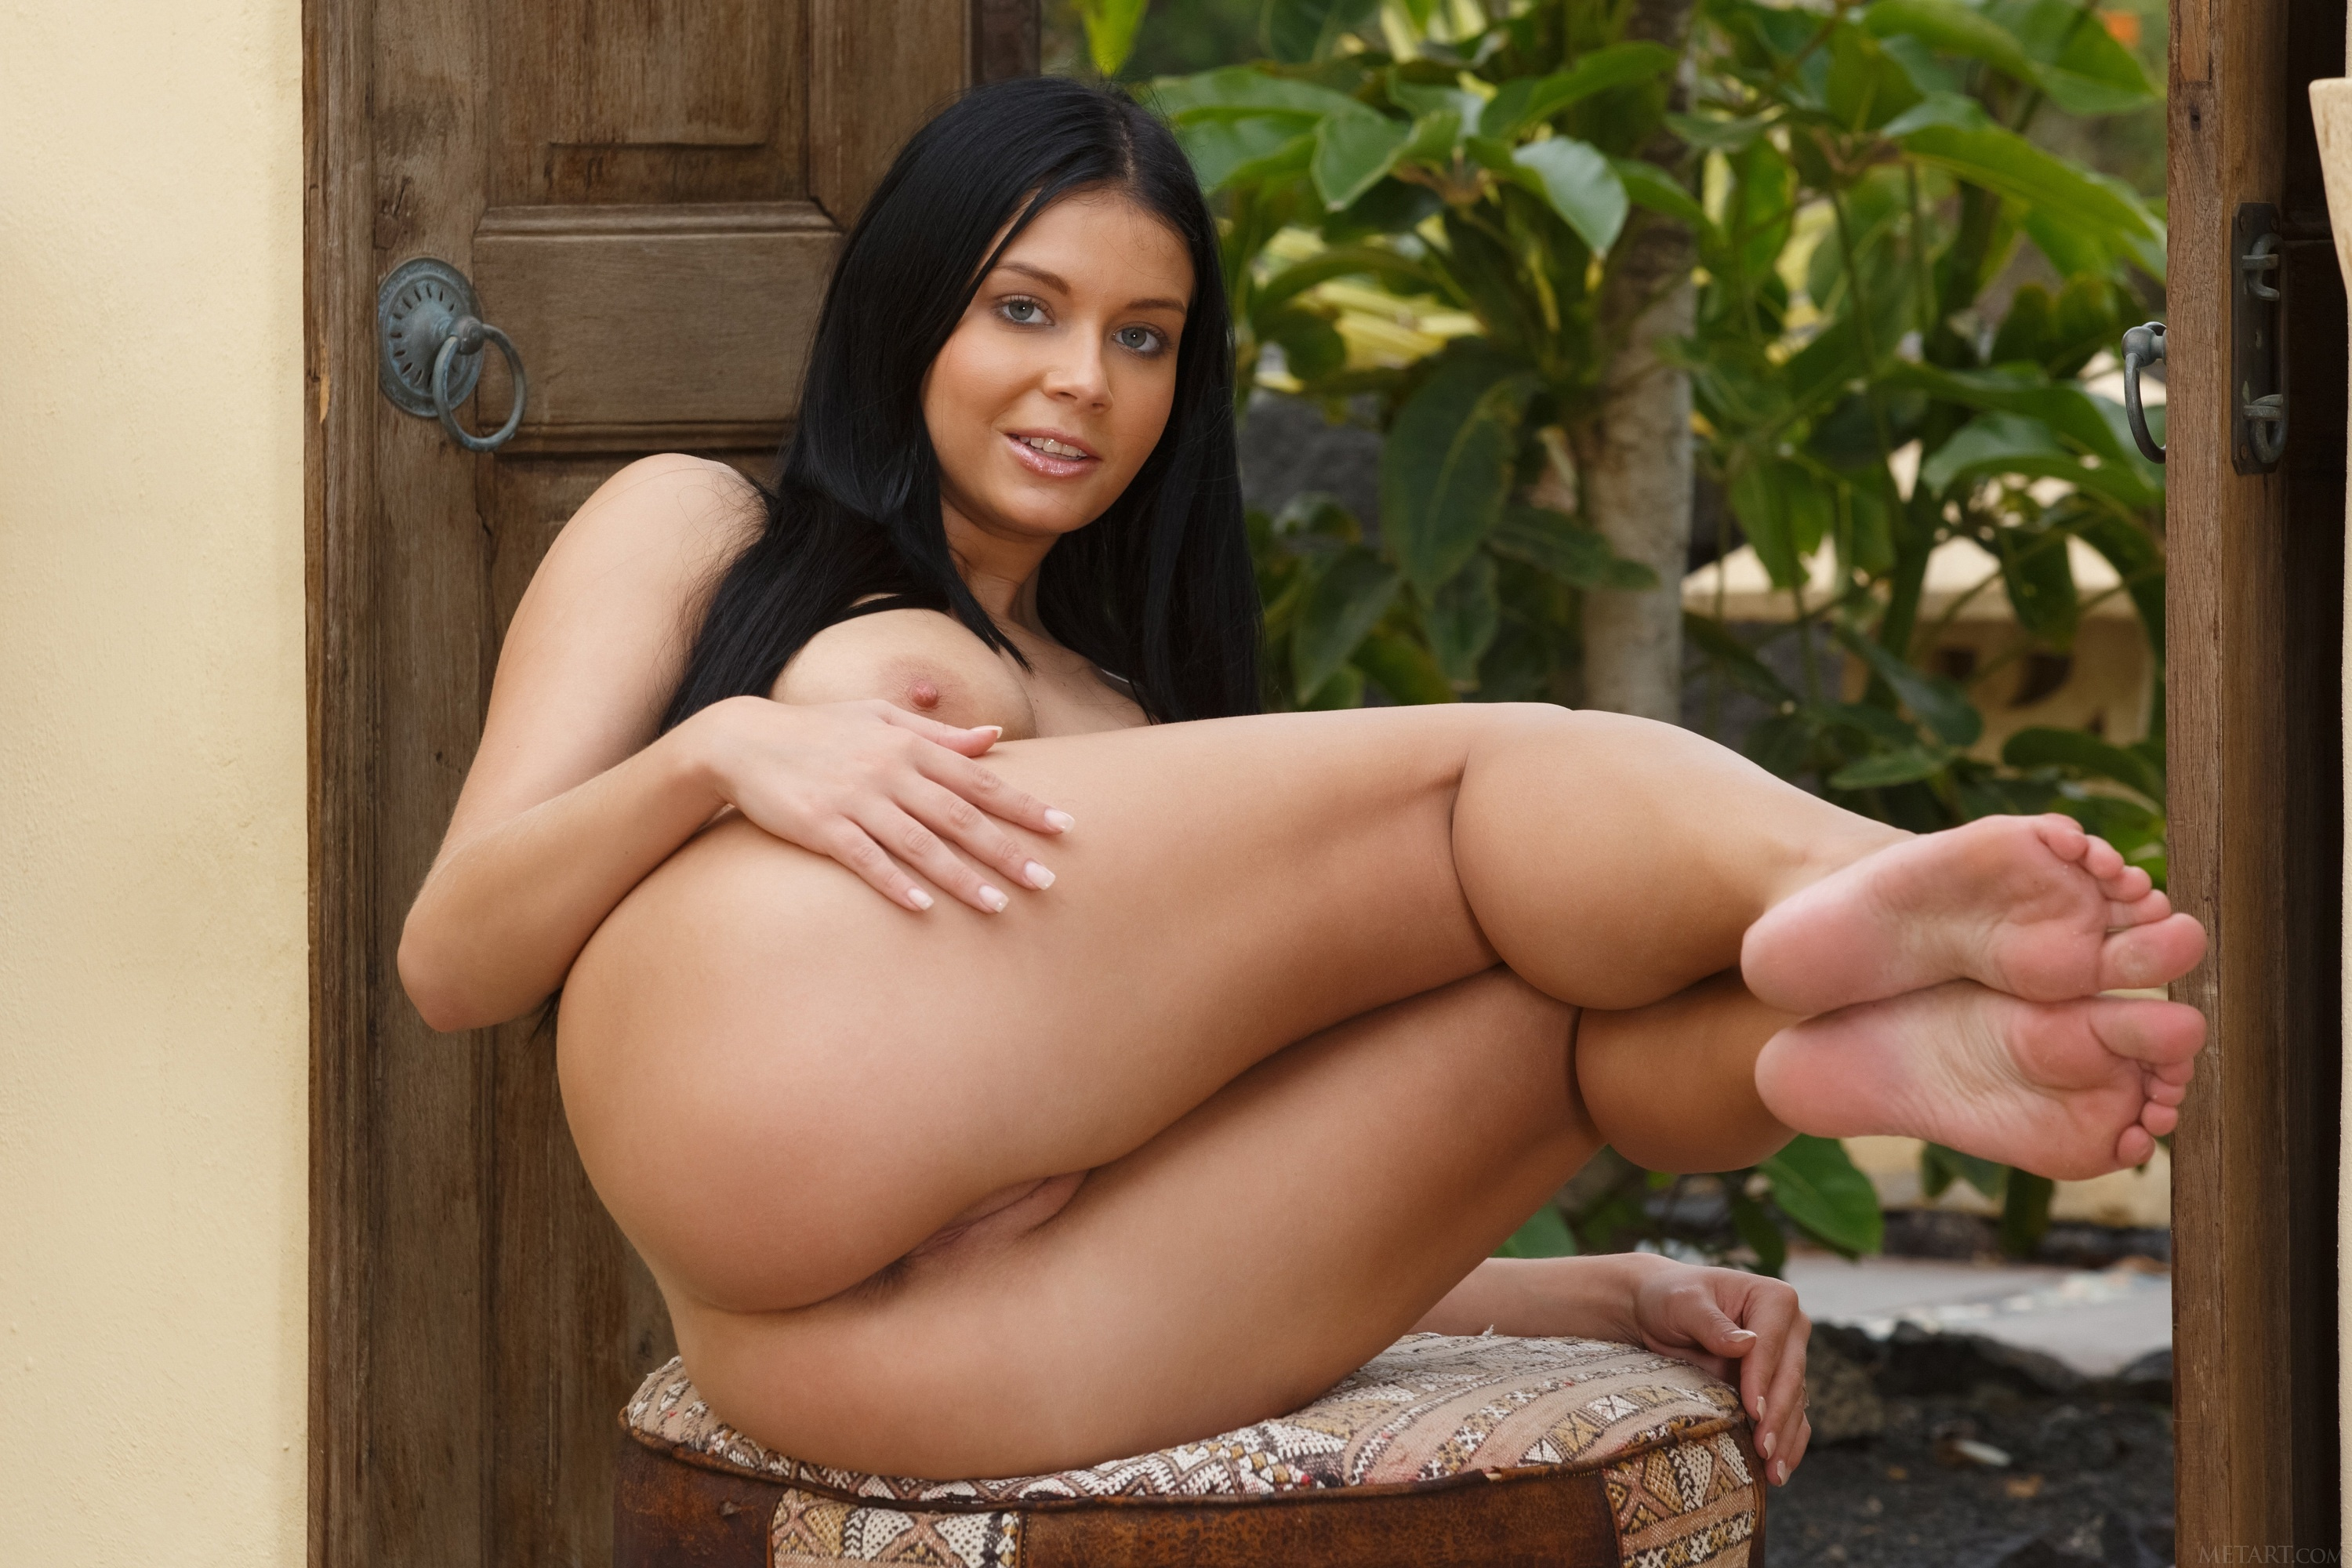 All charm! Hot sexy legs pussy your